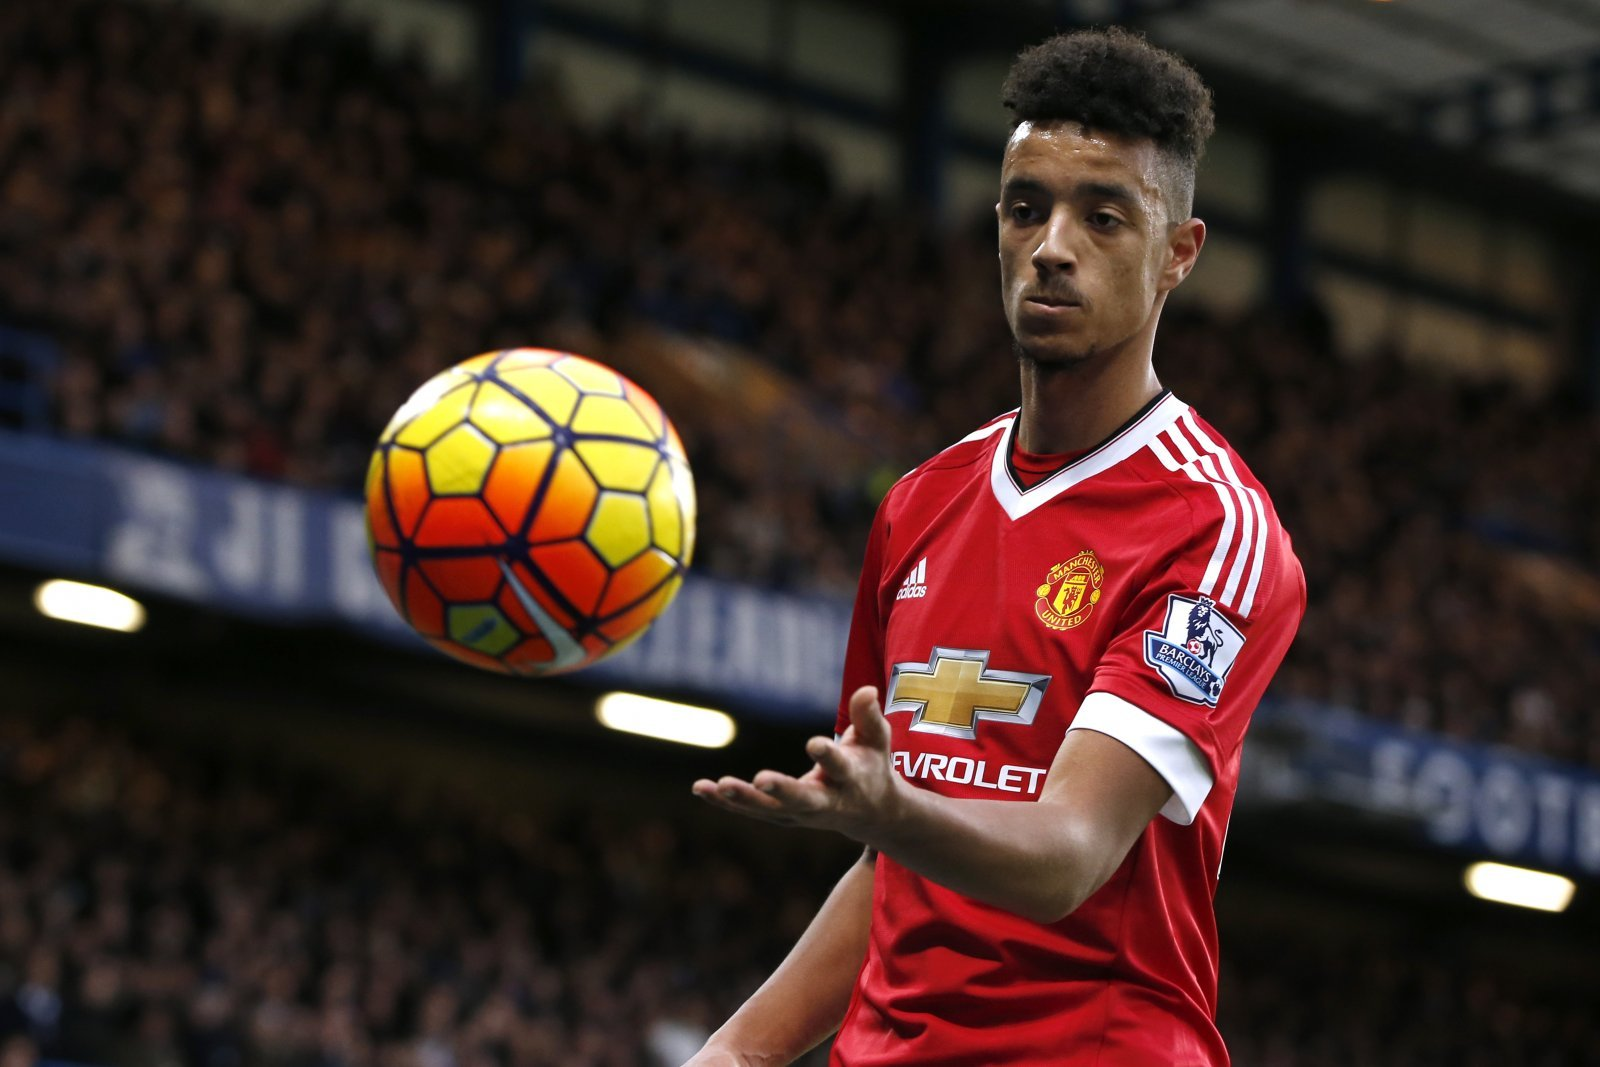 Look at him now: Cameron Borthwick-Jackson and Manchester United